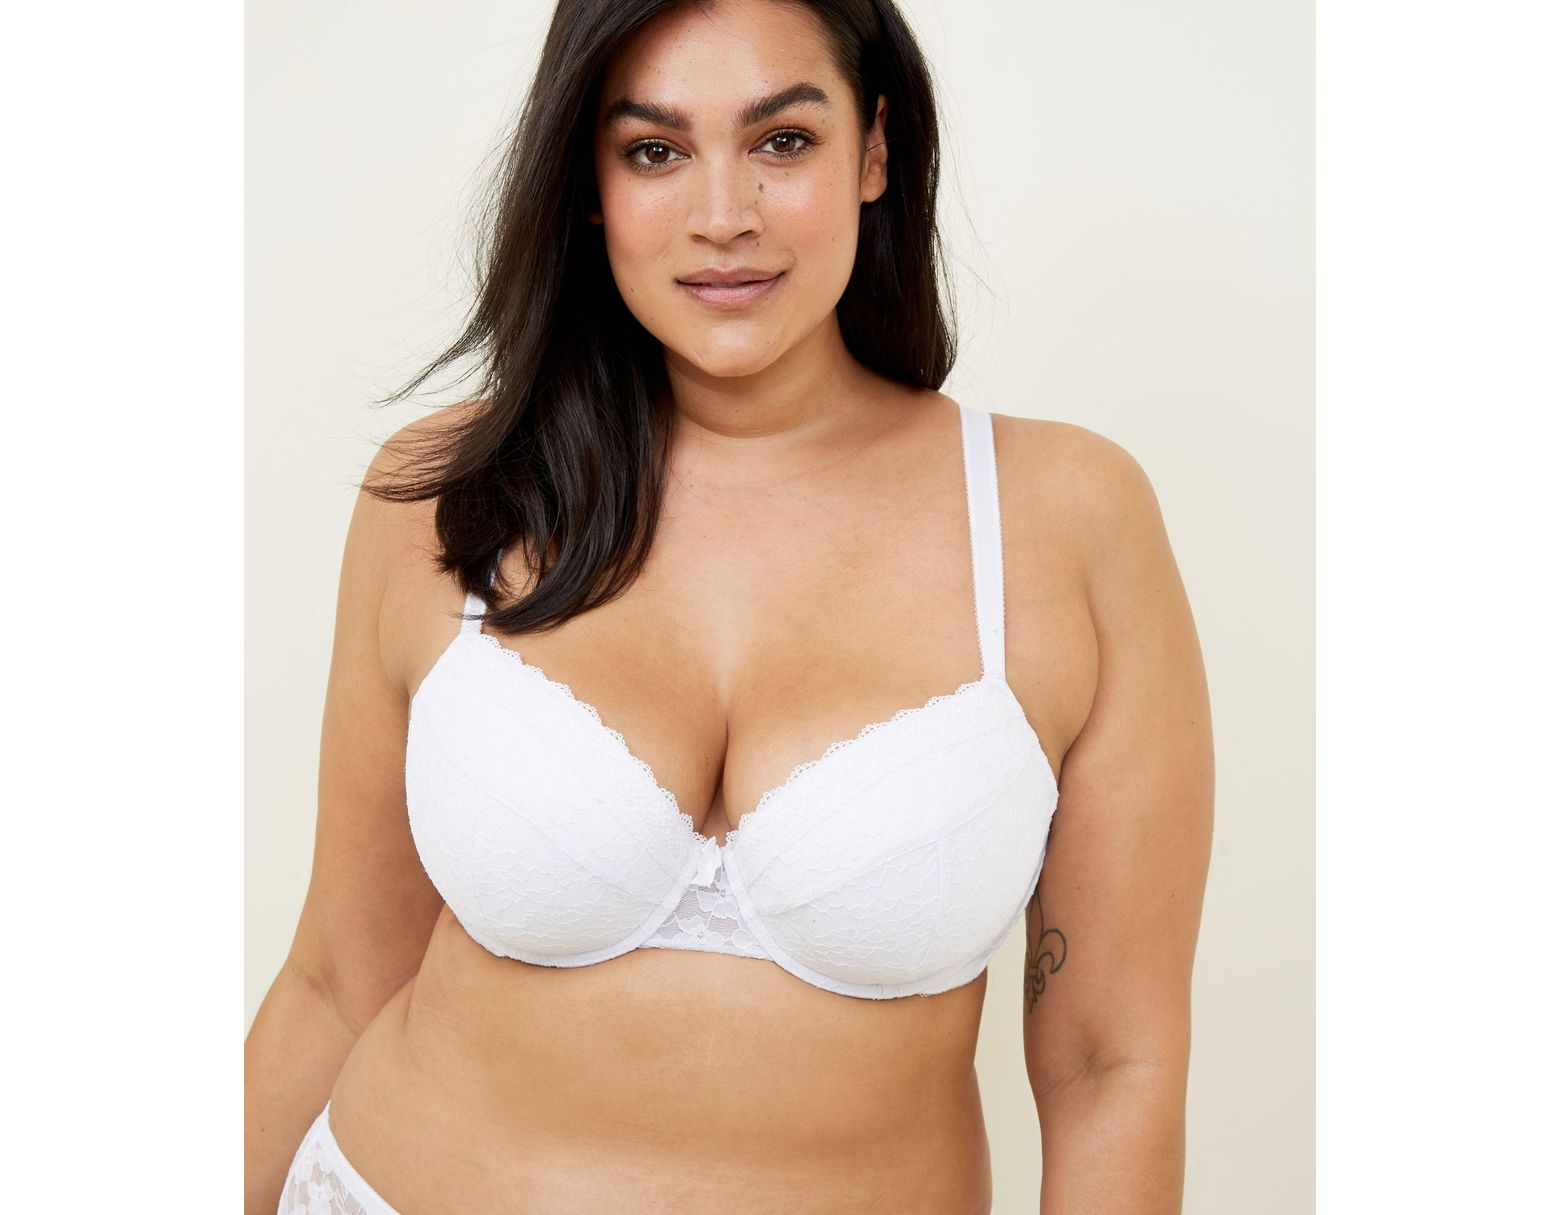 ff38bc89599b2 New Look Curves White Lace Bra in White - Lyst